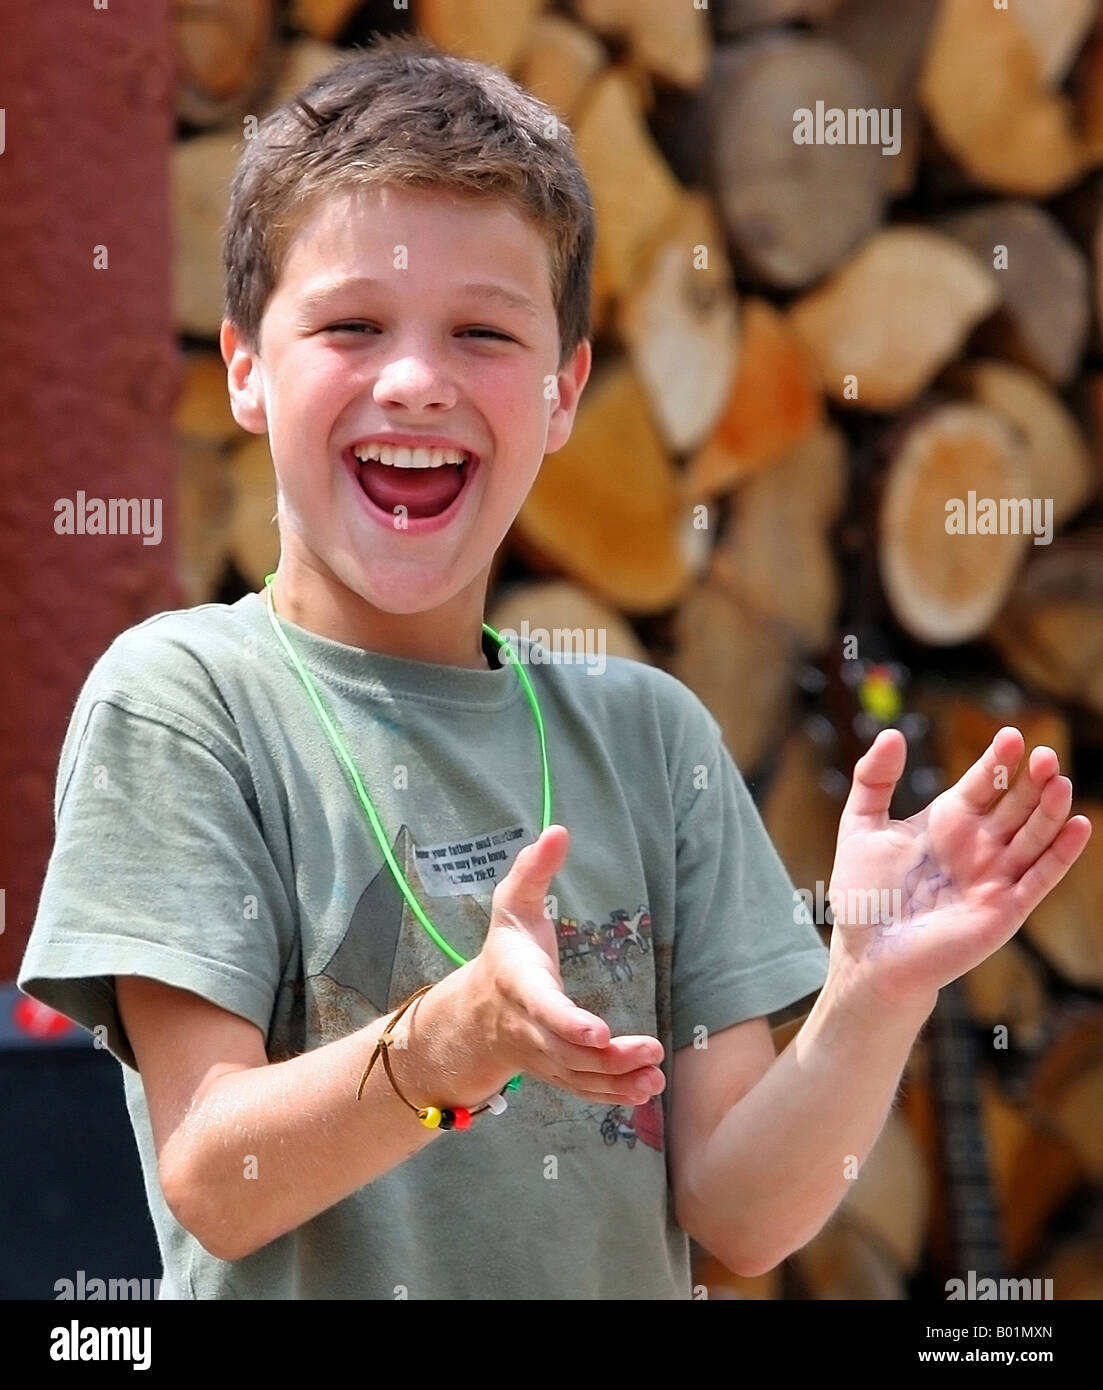 boy clapping hands stock photos boy clapping hands stock images